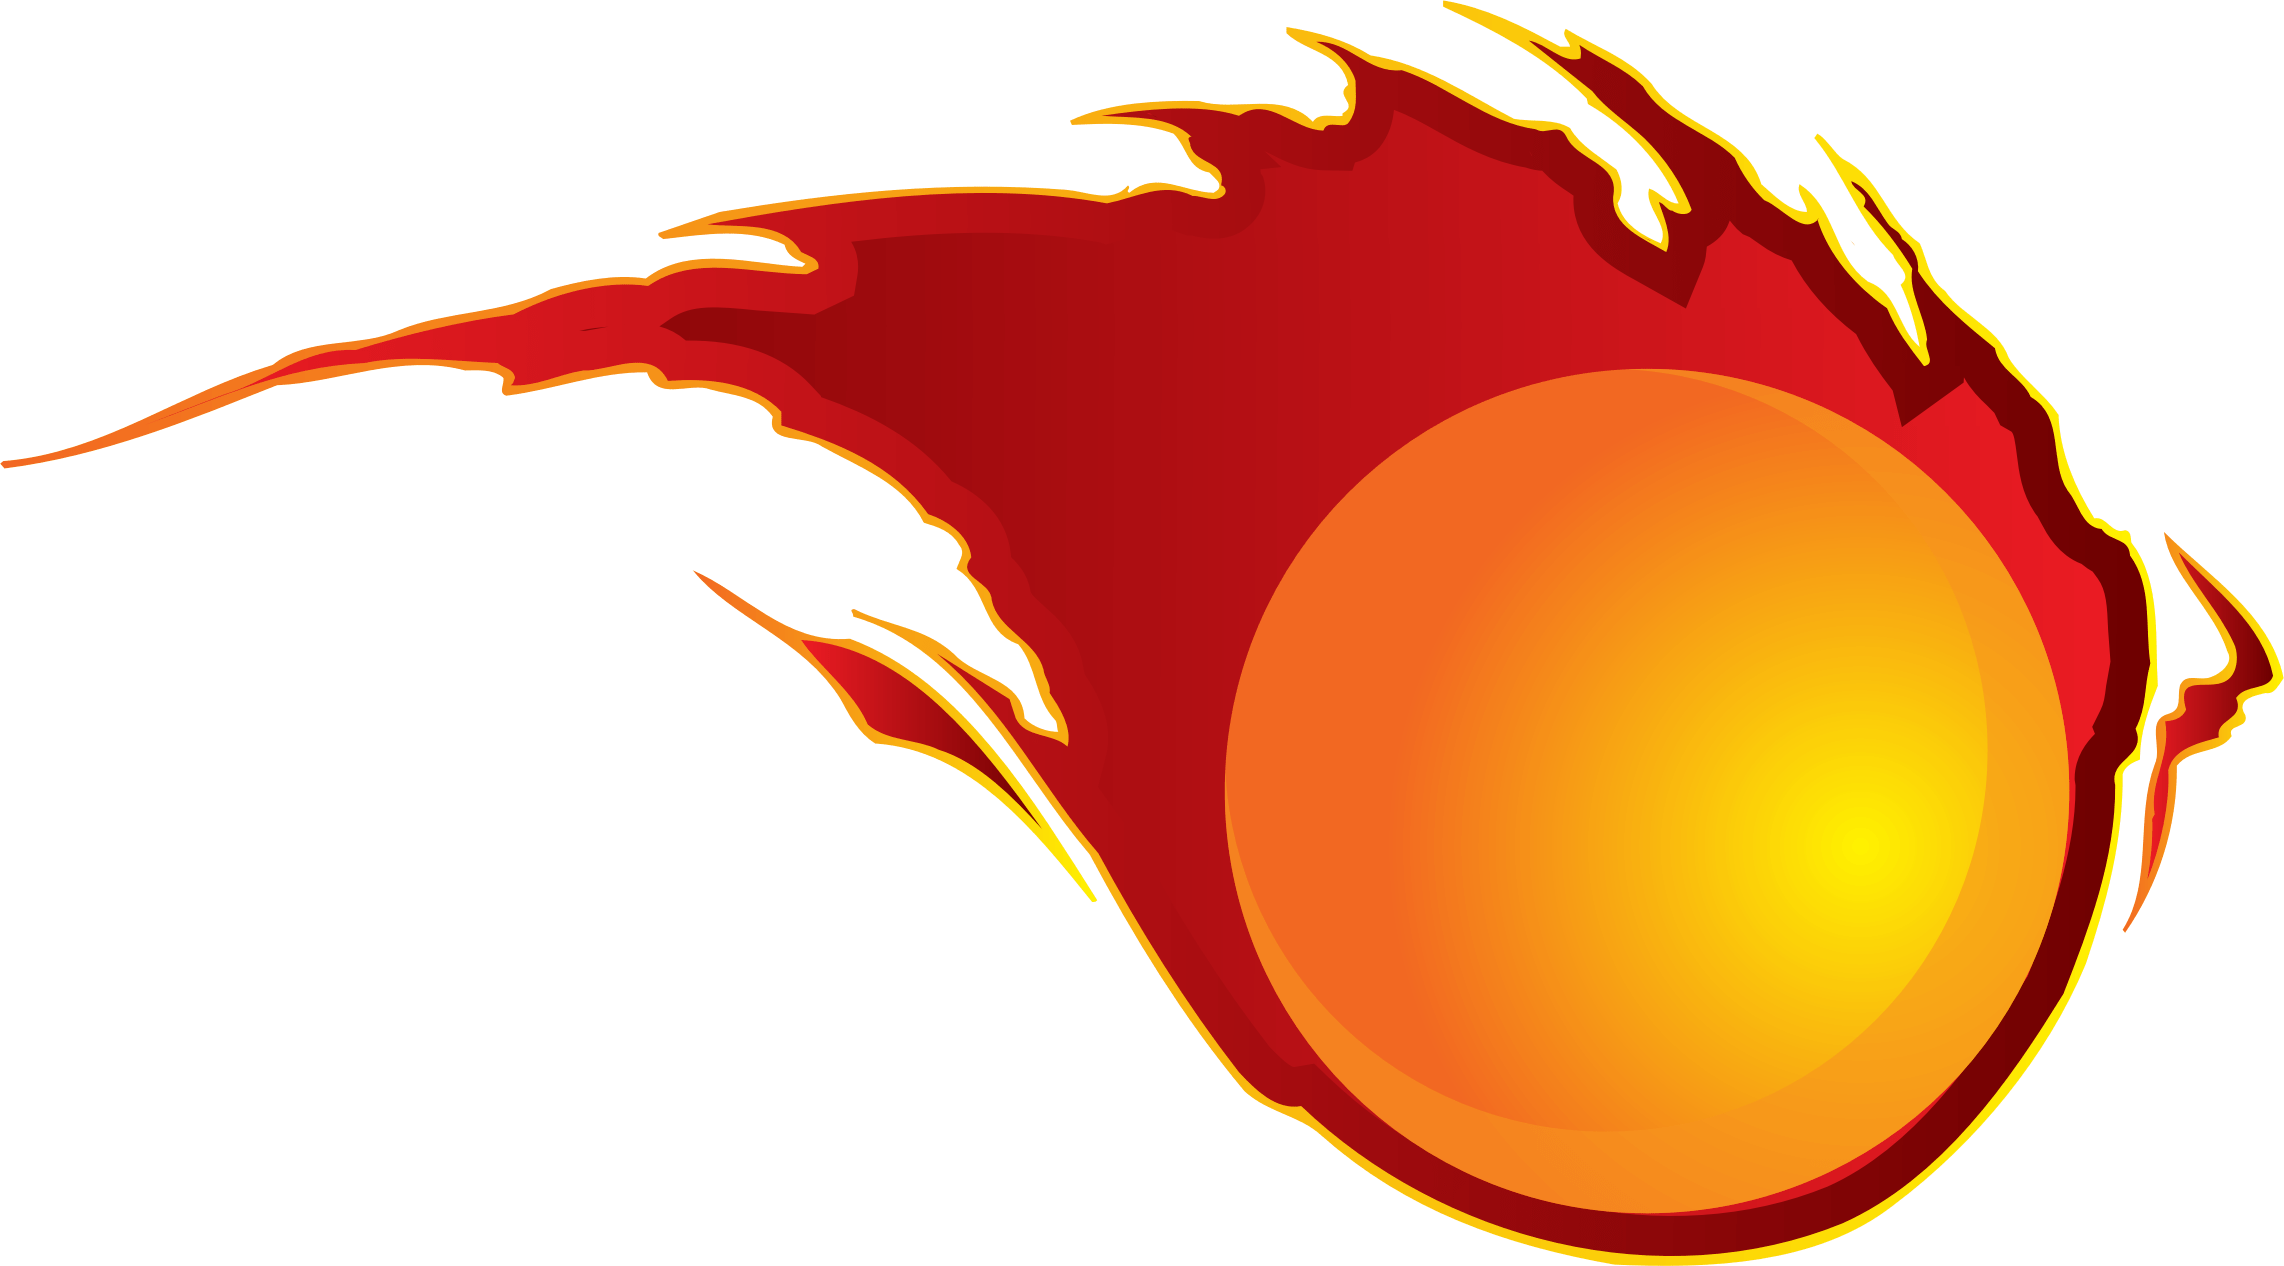 Fire ball clipart  Clipground